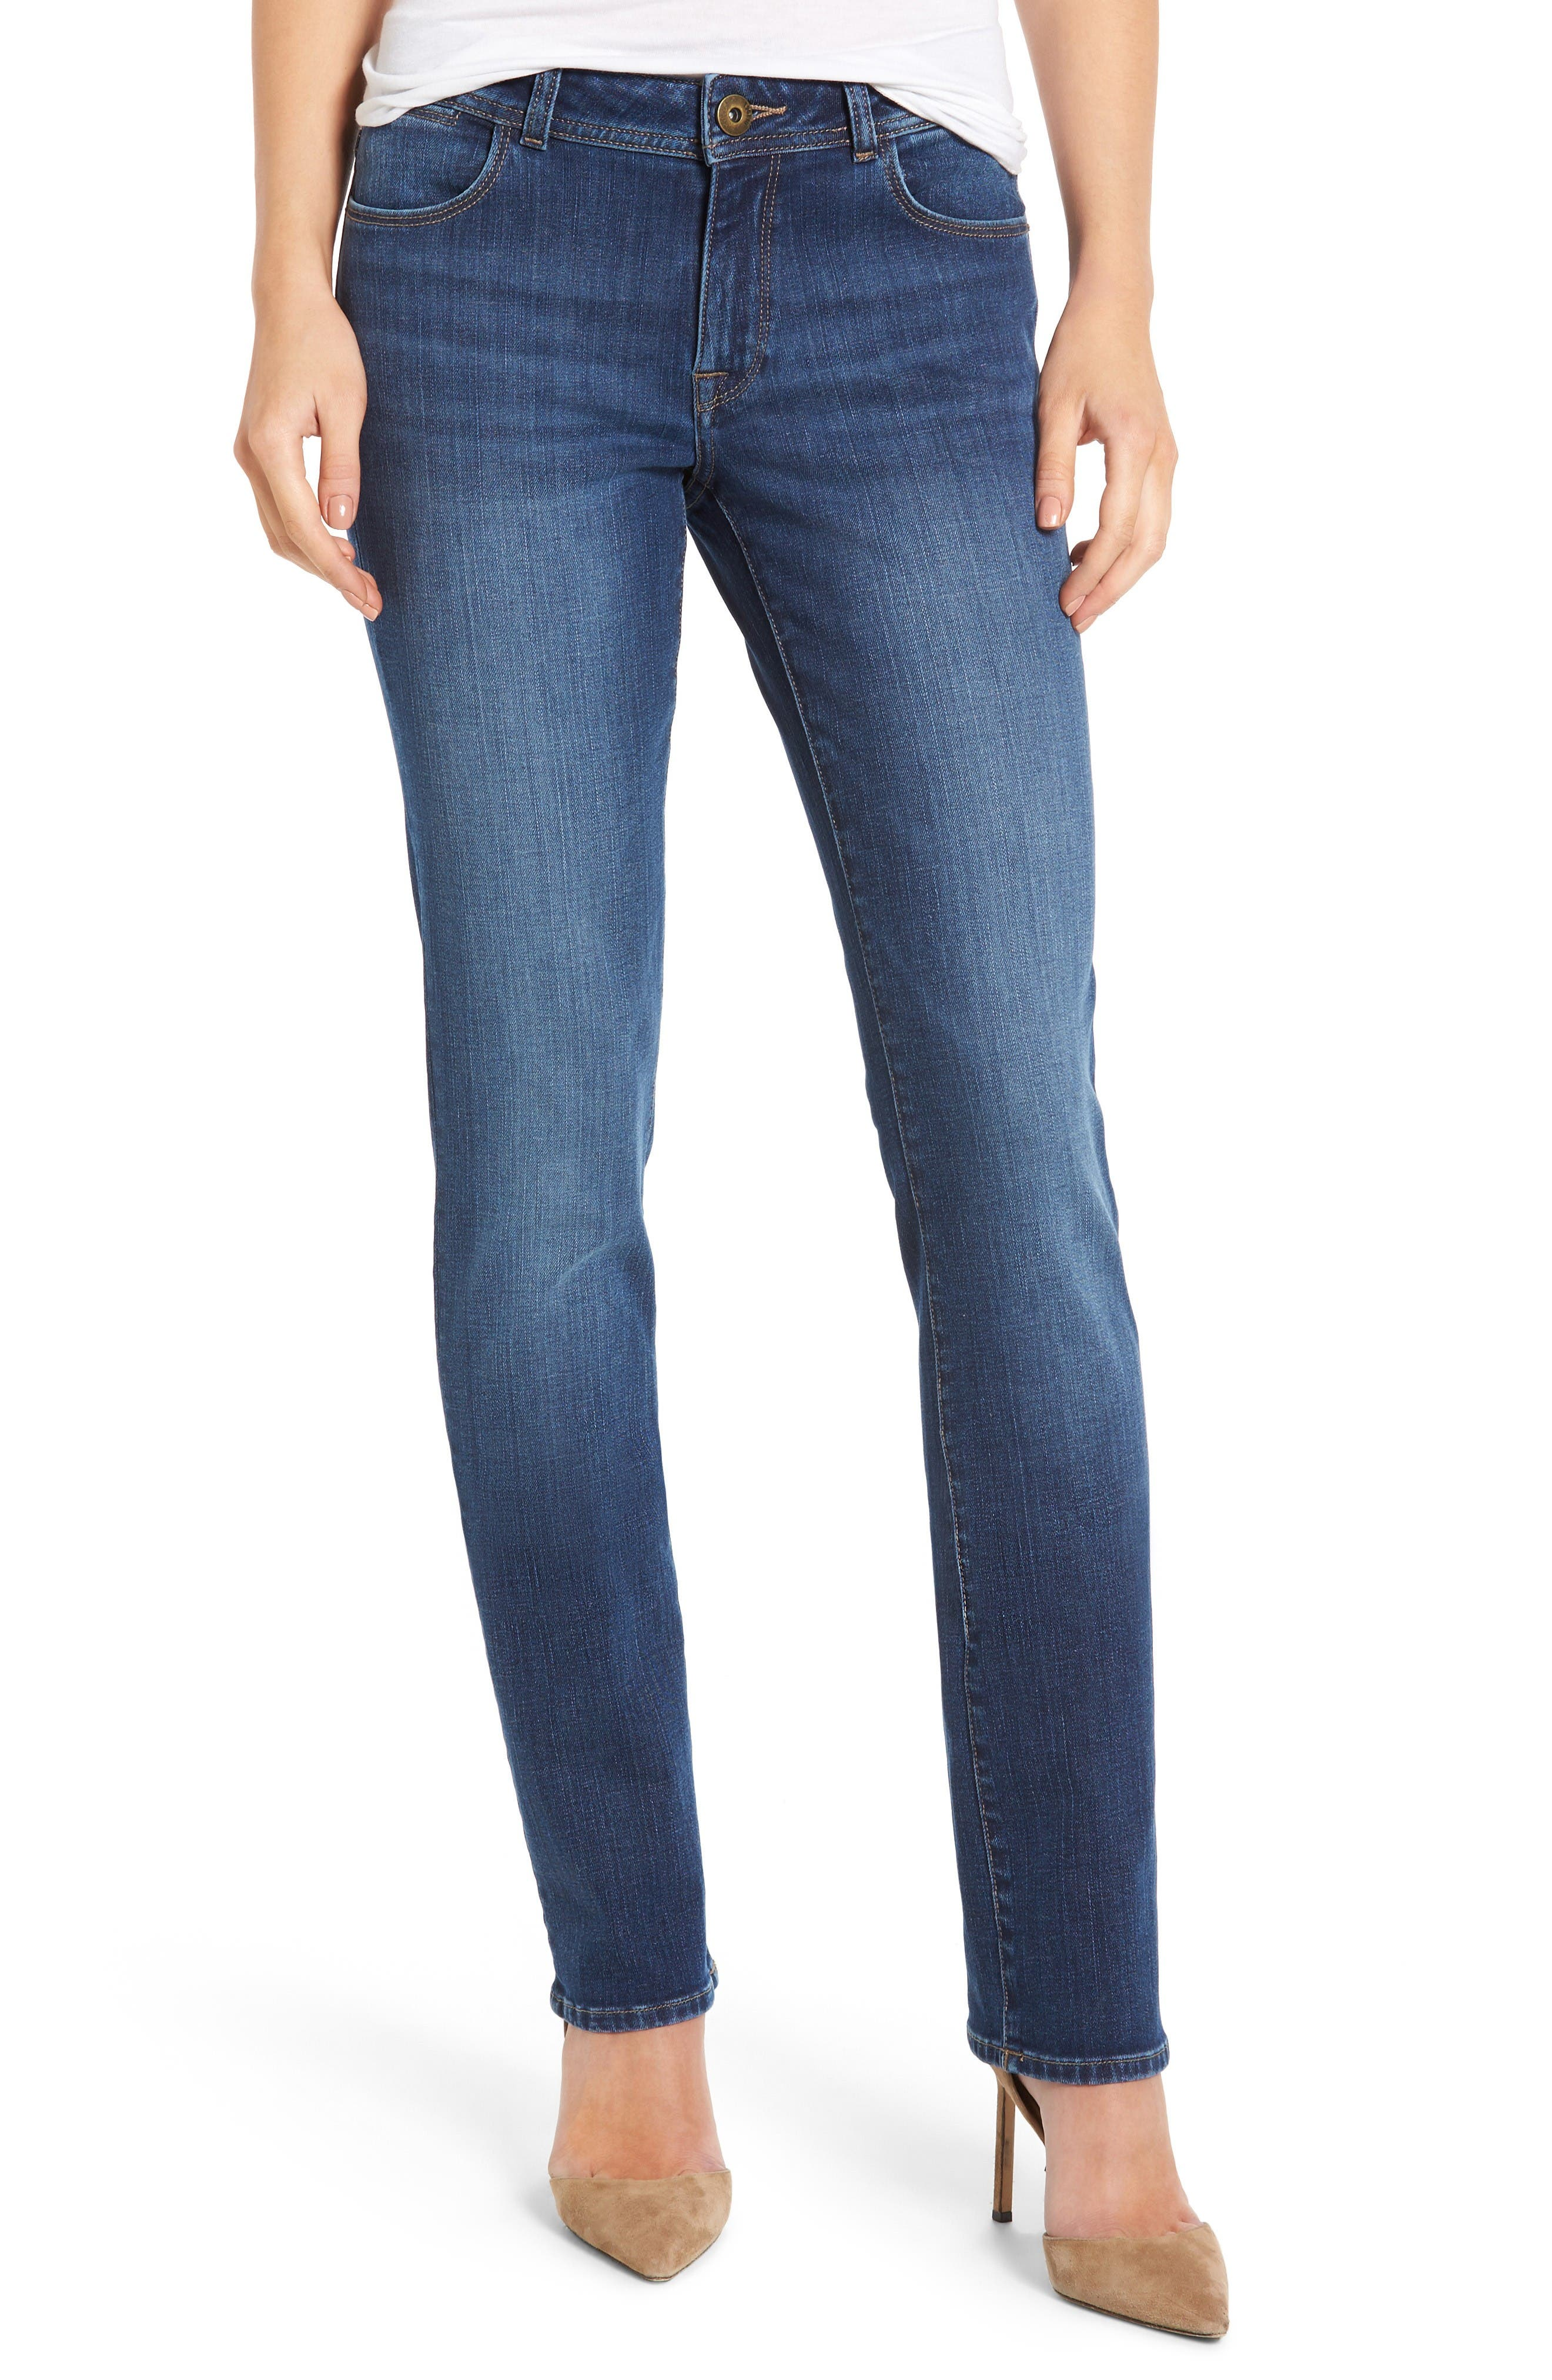 Coco Curvy Straight Leg Jeans,                             Main thumbnail 1, color,                             Pacific